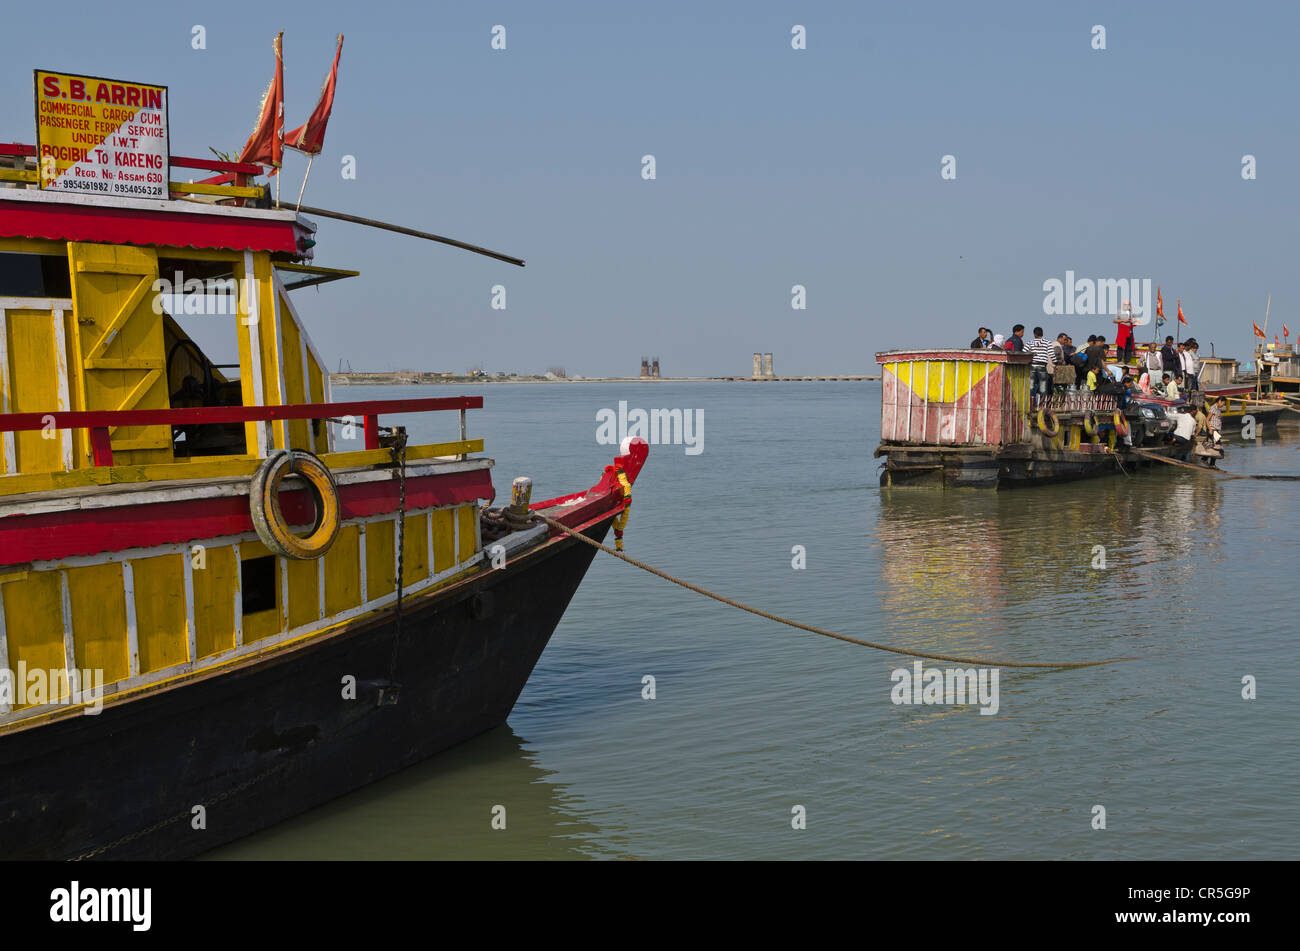 Ferryboats, waiting for customers to cross Brahmaputra River, Ghat, Assam, India, Asia - Stock Image